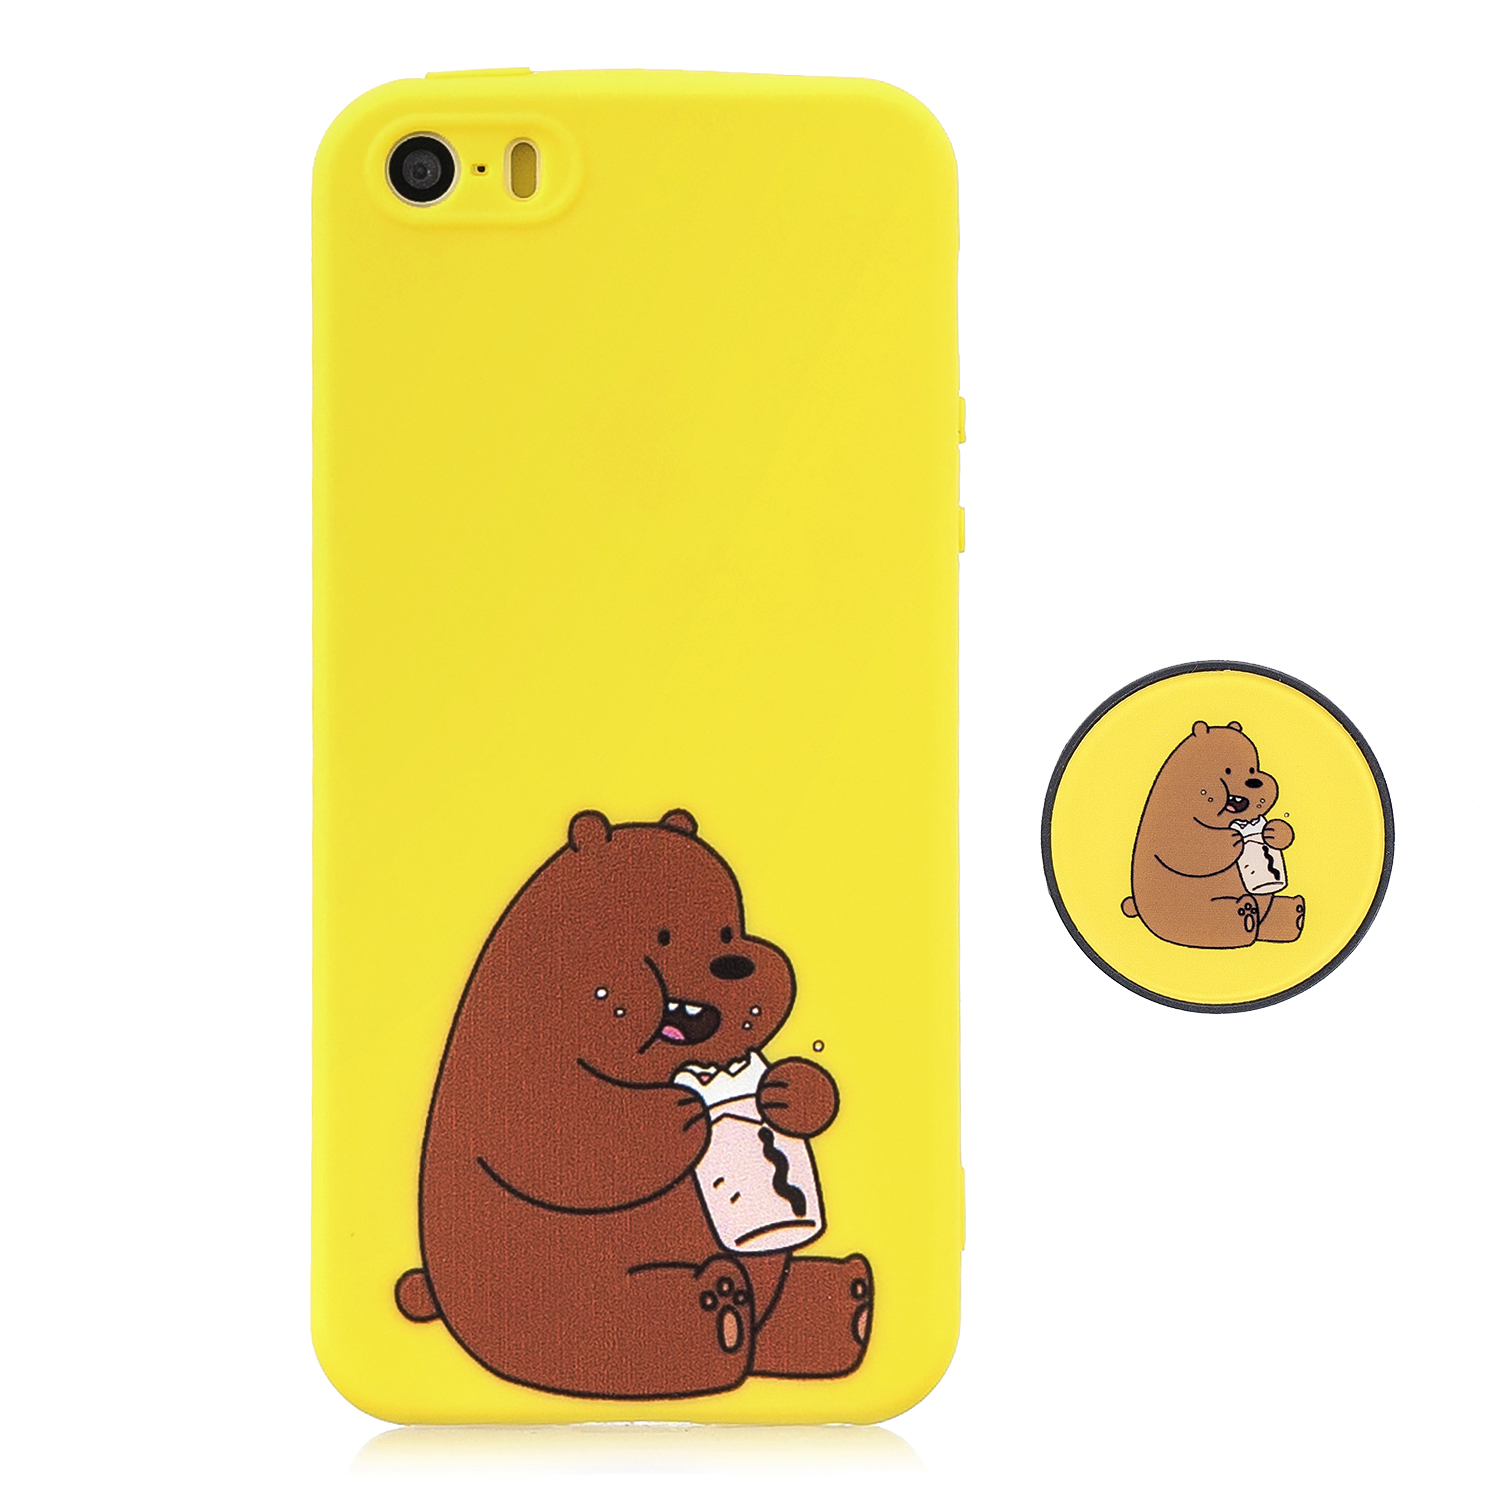 For iPhone 5 5S SE Phone Cases TPU Full Cover Cute Cartoon Painted Case Girls Mobile Phone Cover 8